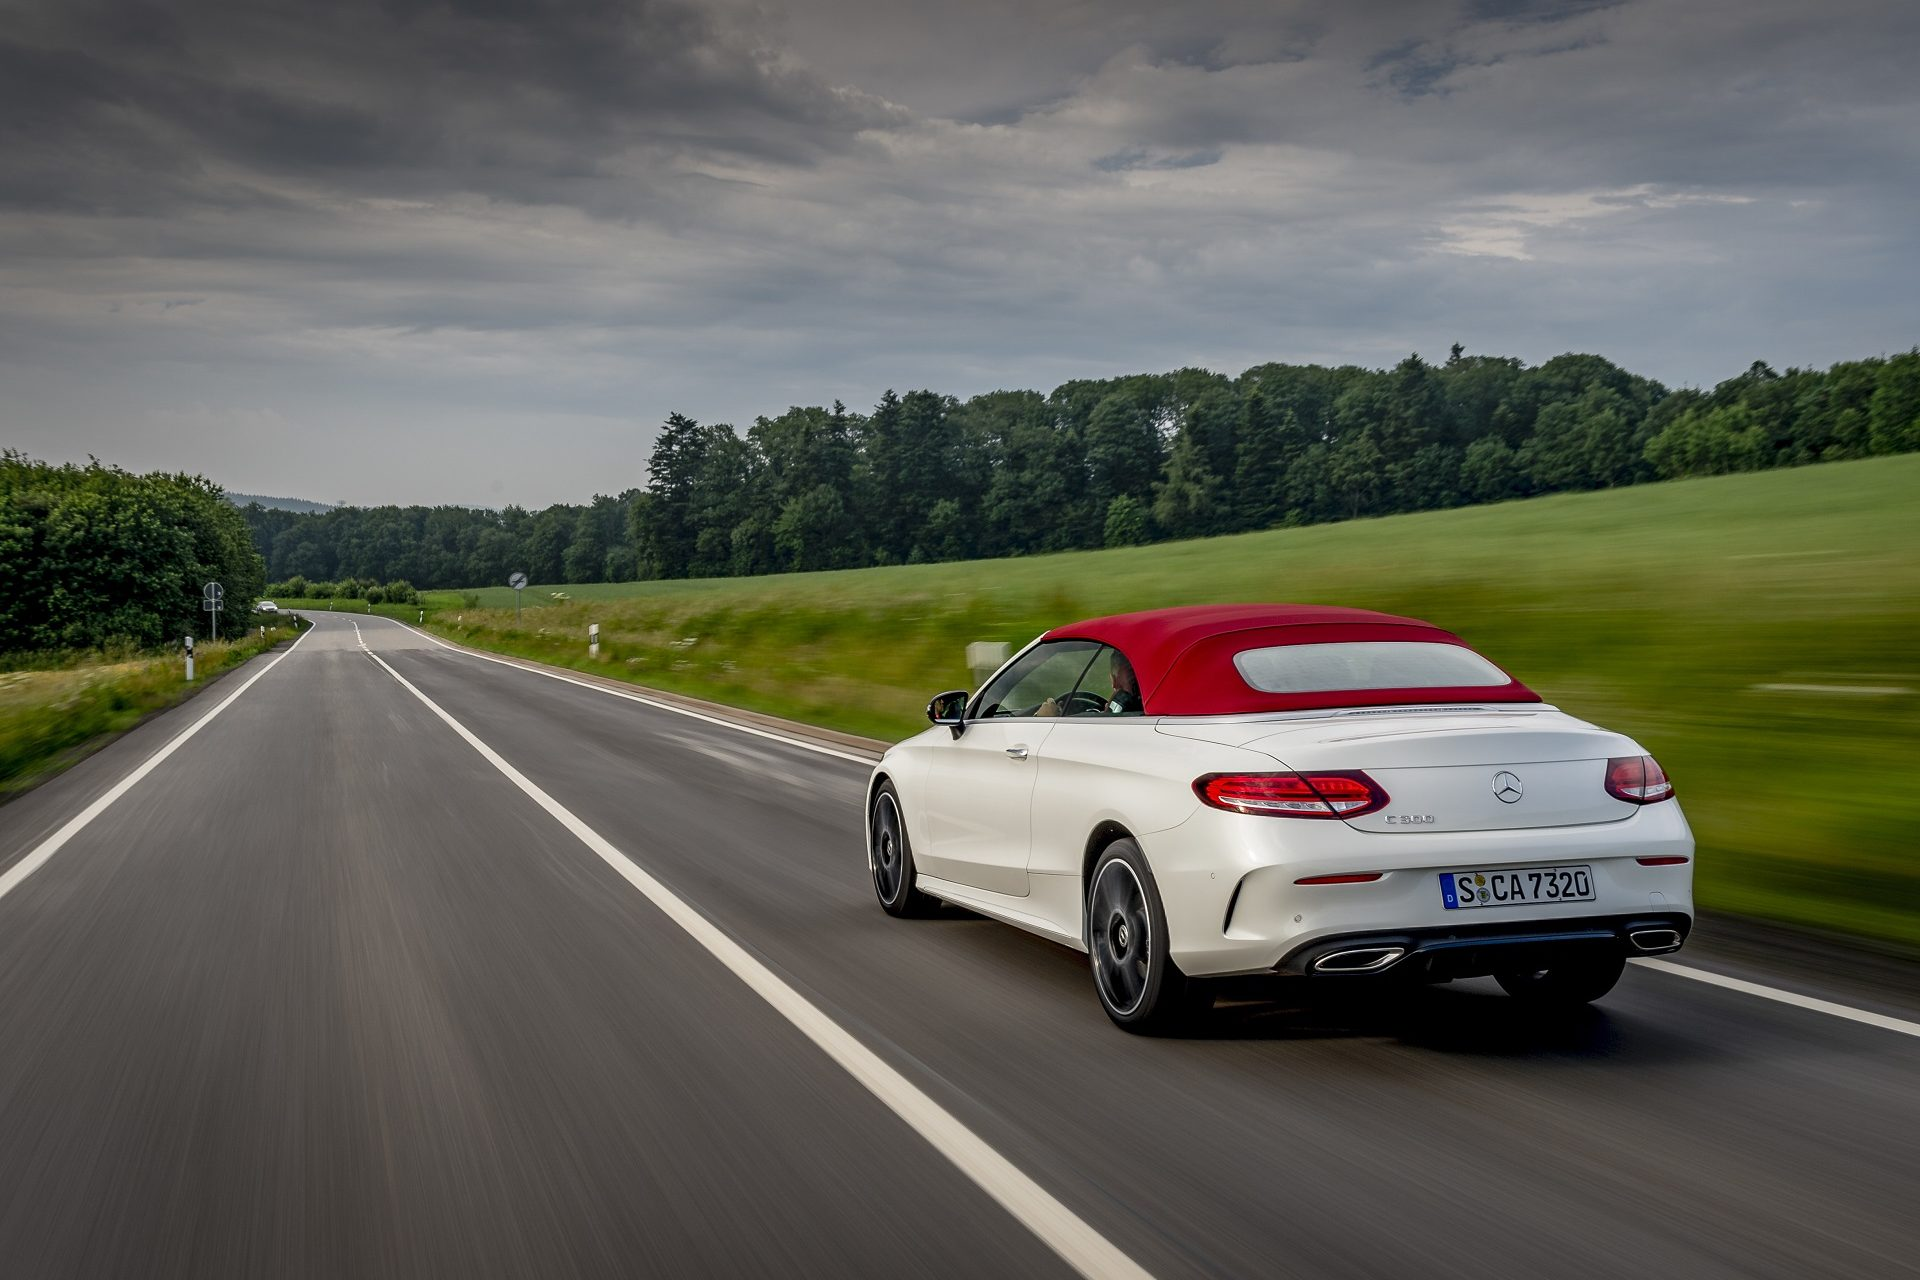 MERCEDES-BENZ EXTENDS SOUTH AFRICAN LOVE AFFAIR WITH LAUNCH